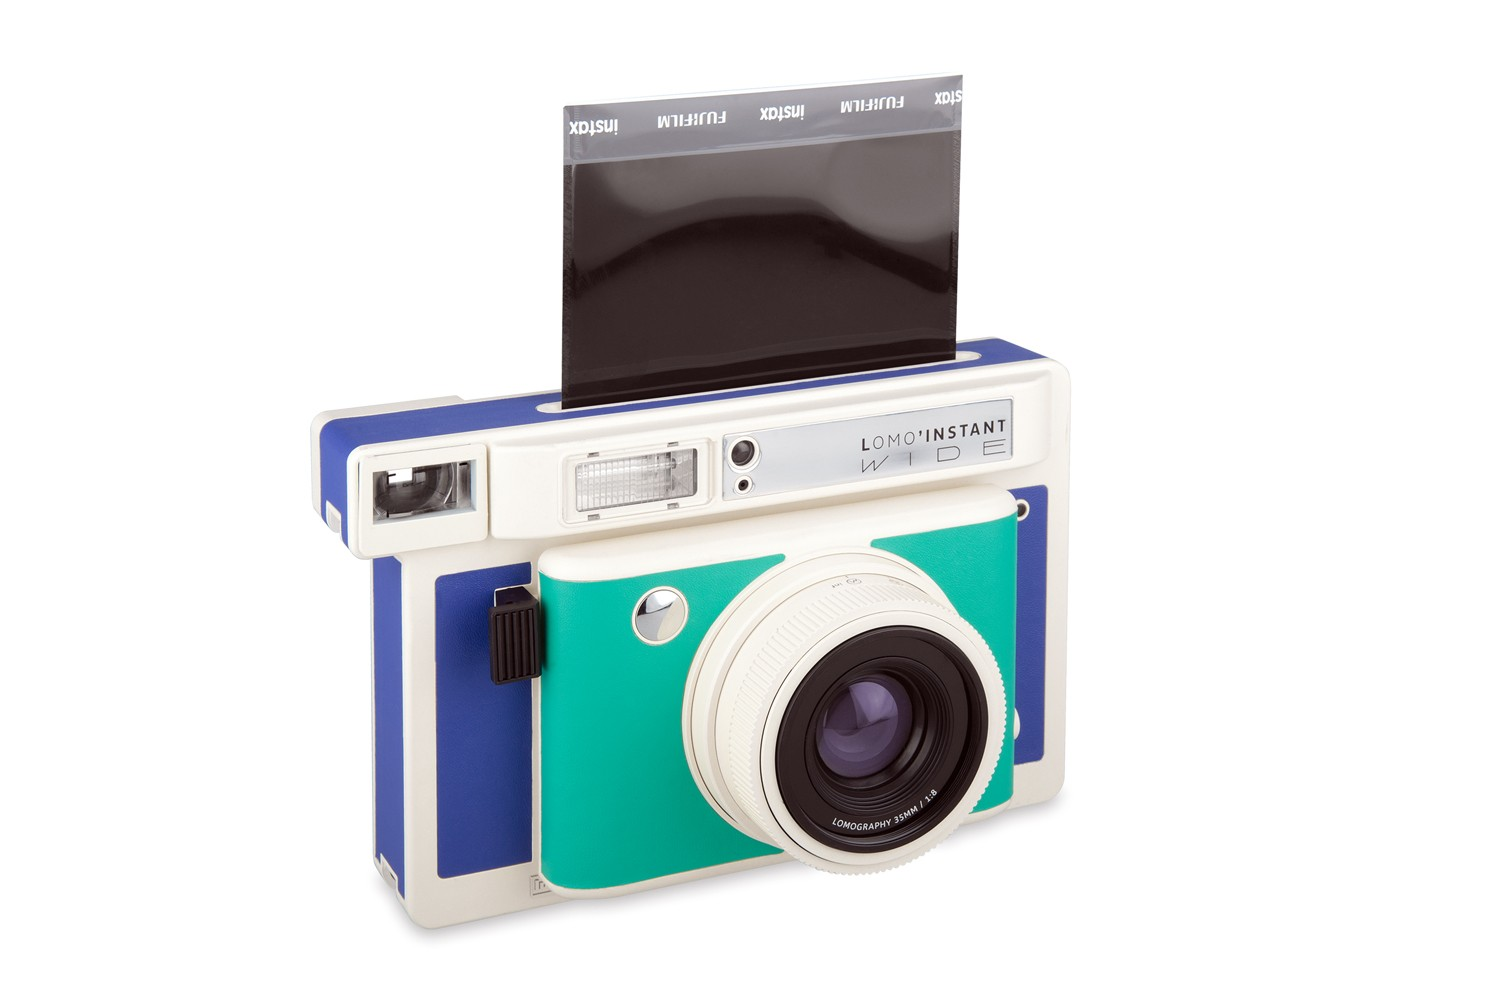 SNAPPP-Lomo'instant wide